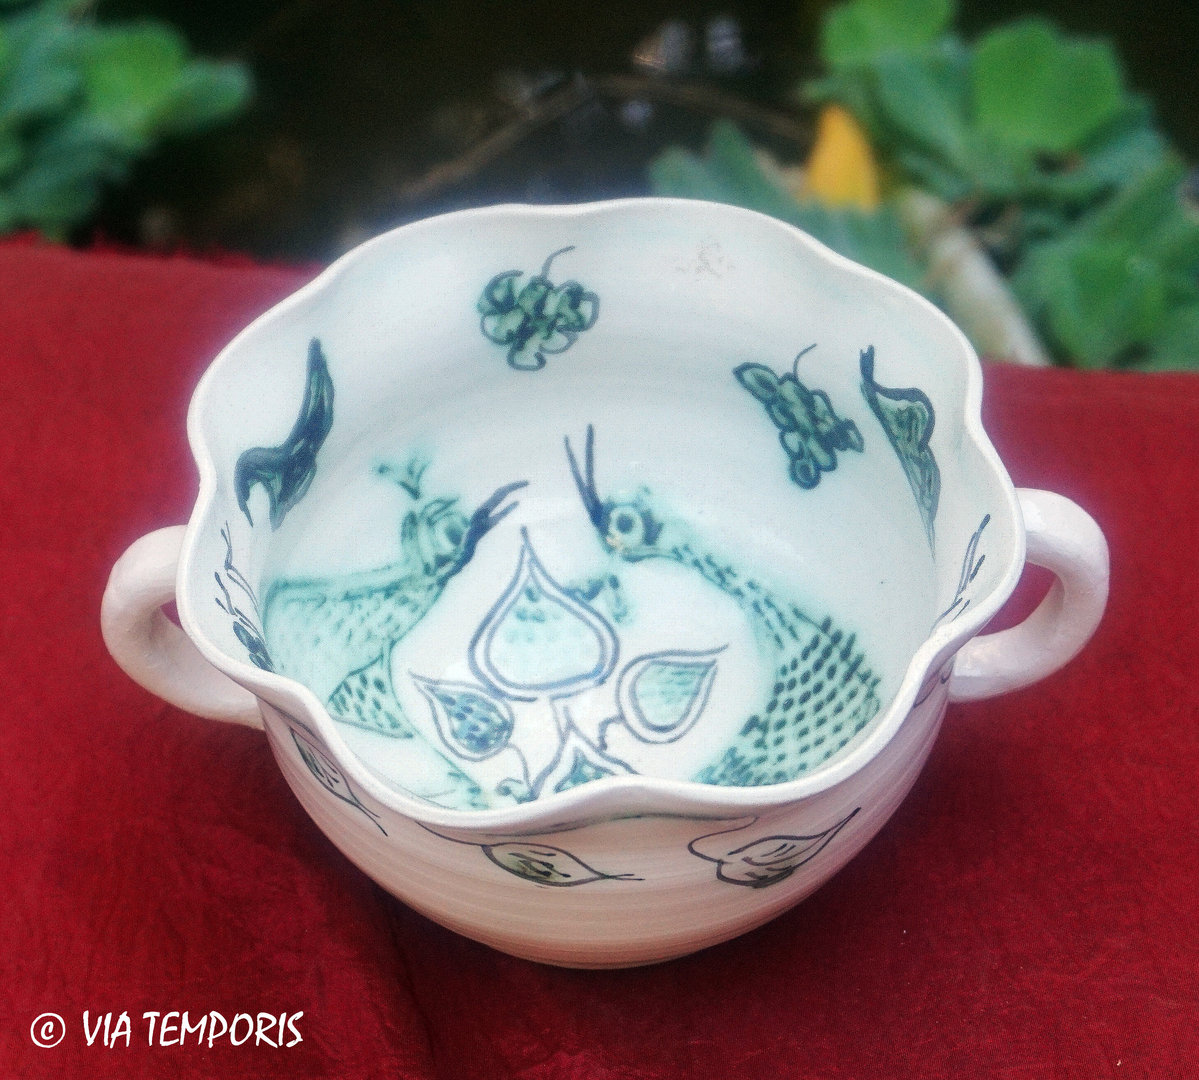 MEDIEVAL CERAMIC - MULTI-LOBED CUP WITH PEACOCKS DECOR